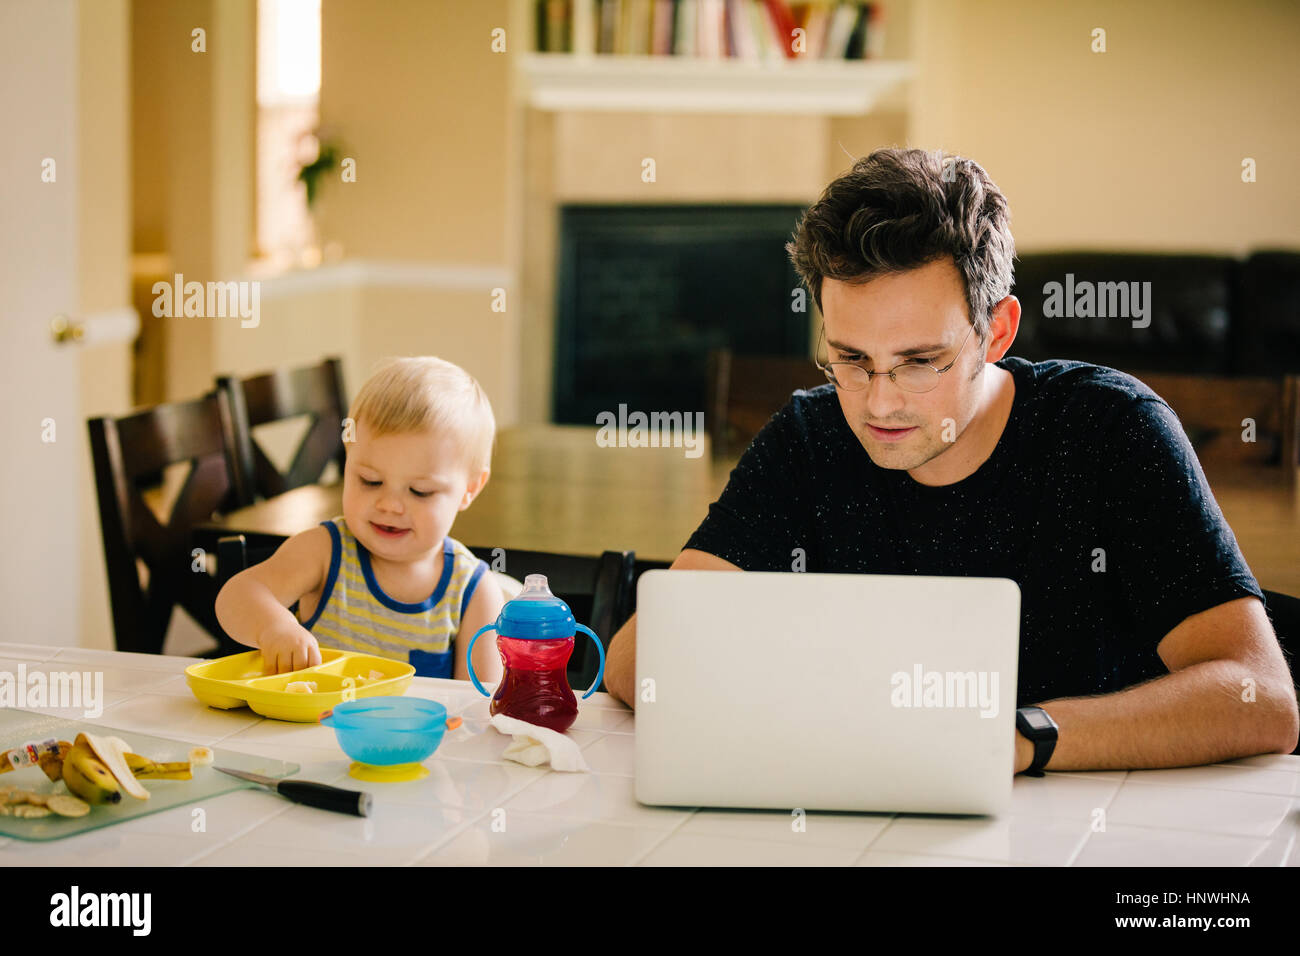 Father and young son sitting at table, son eating, father using laptop - Stock Image